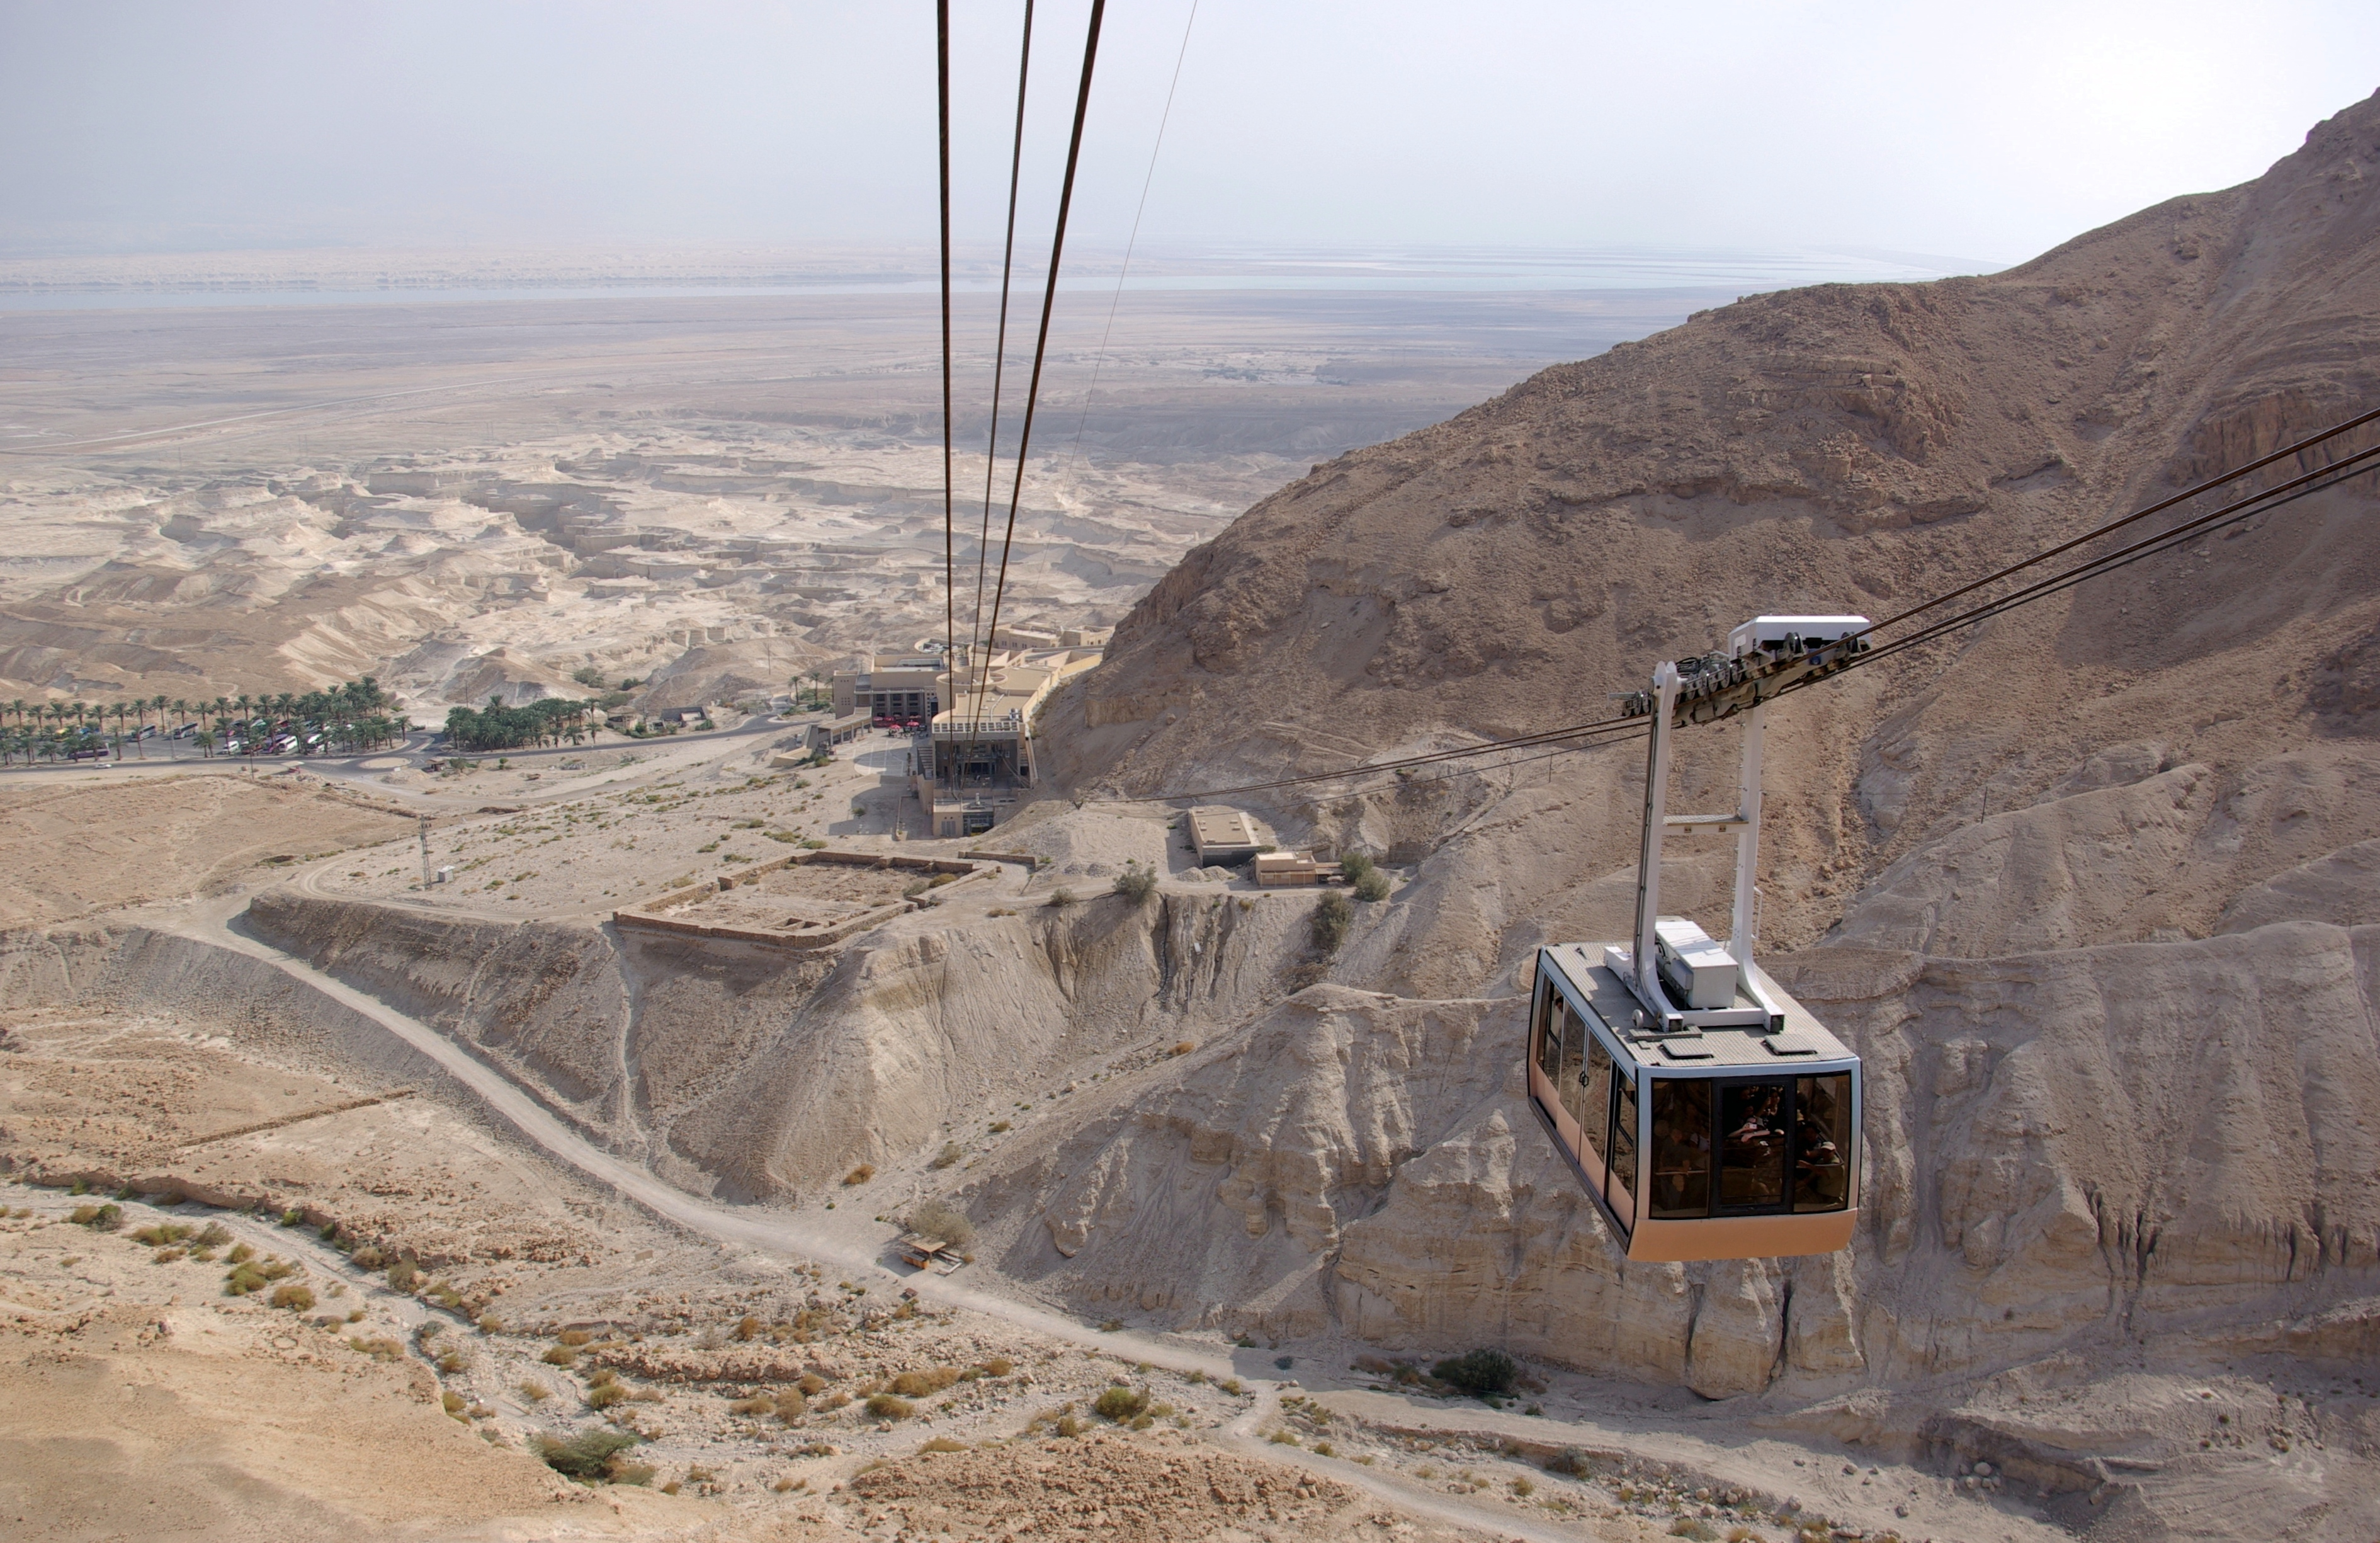 lowest cable ride in the world